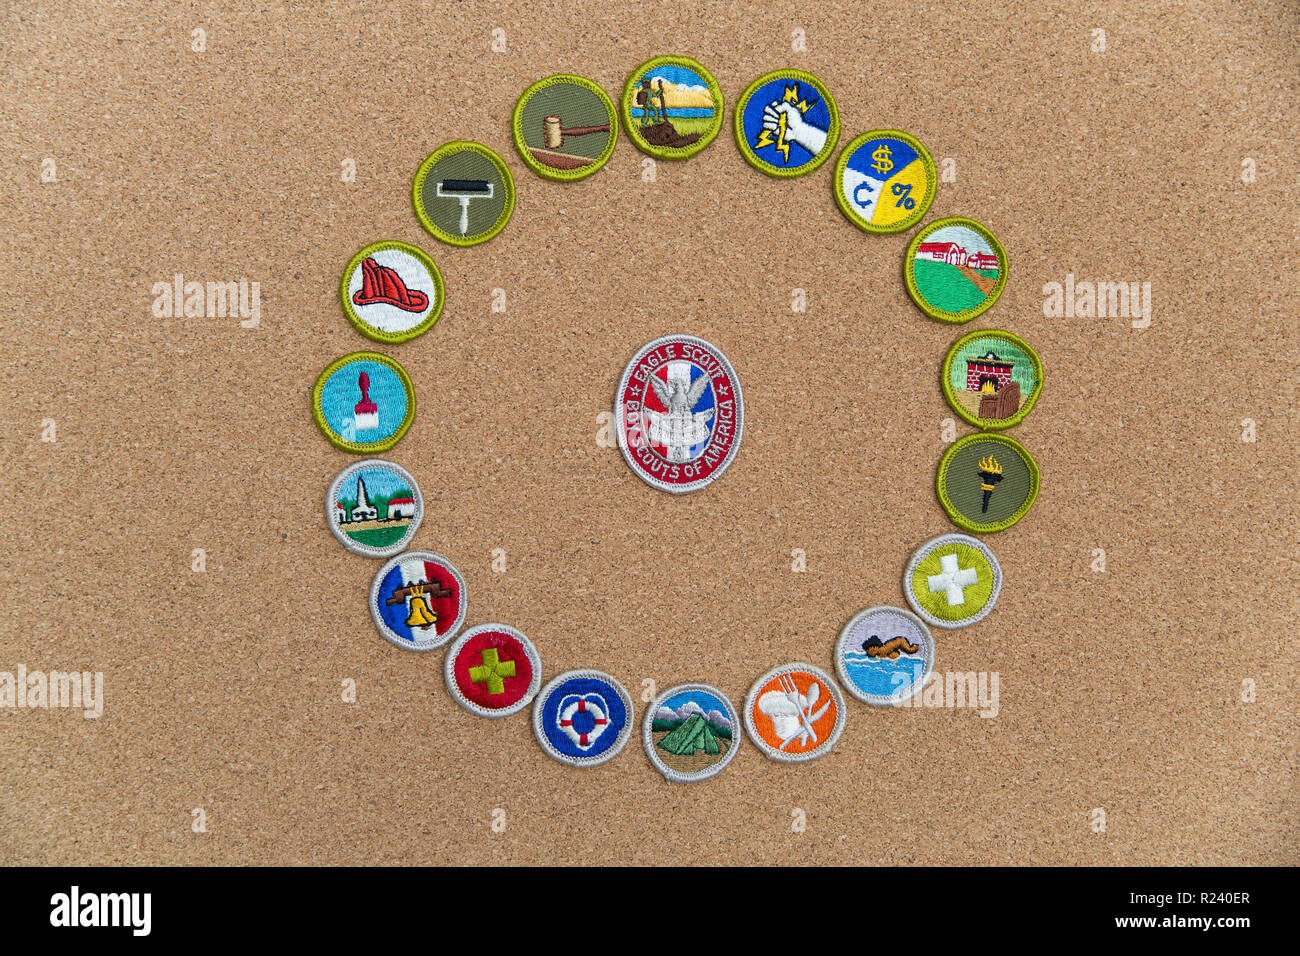 SAINT LOUIS, UNITED STATES - AUG 22, 2018:  A circular arrangement of Boy Scouts of America (BSA) merit badges with Eagle badge on cork background - Stock Image